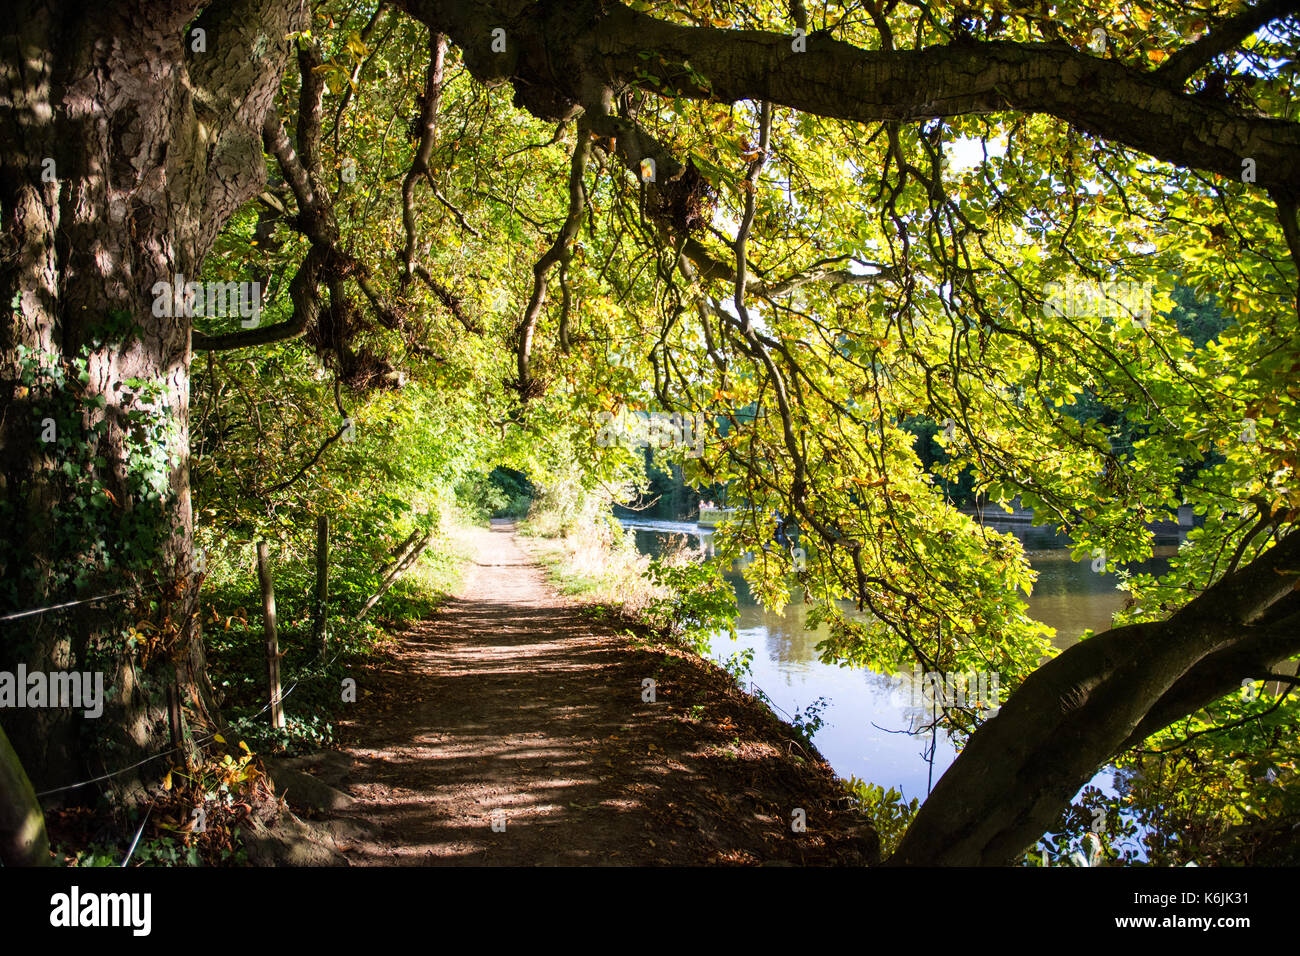 The Thames footpath alongside the meandering River Thames in the flood plains of Goring, up river from Reading in - Stock Image